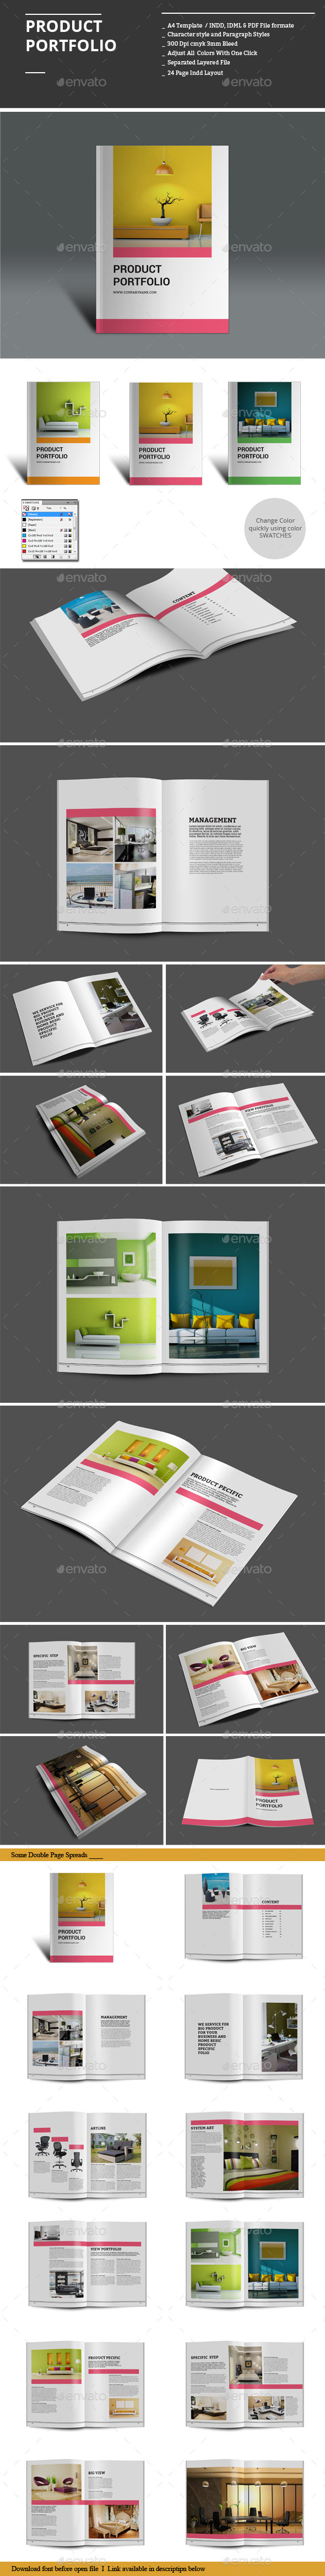 GraphicRiver Product Portfolio 9011166